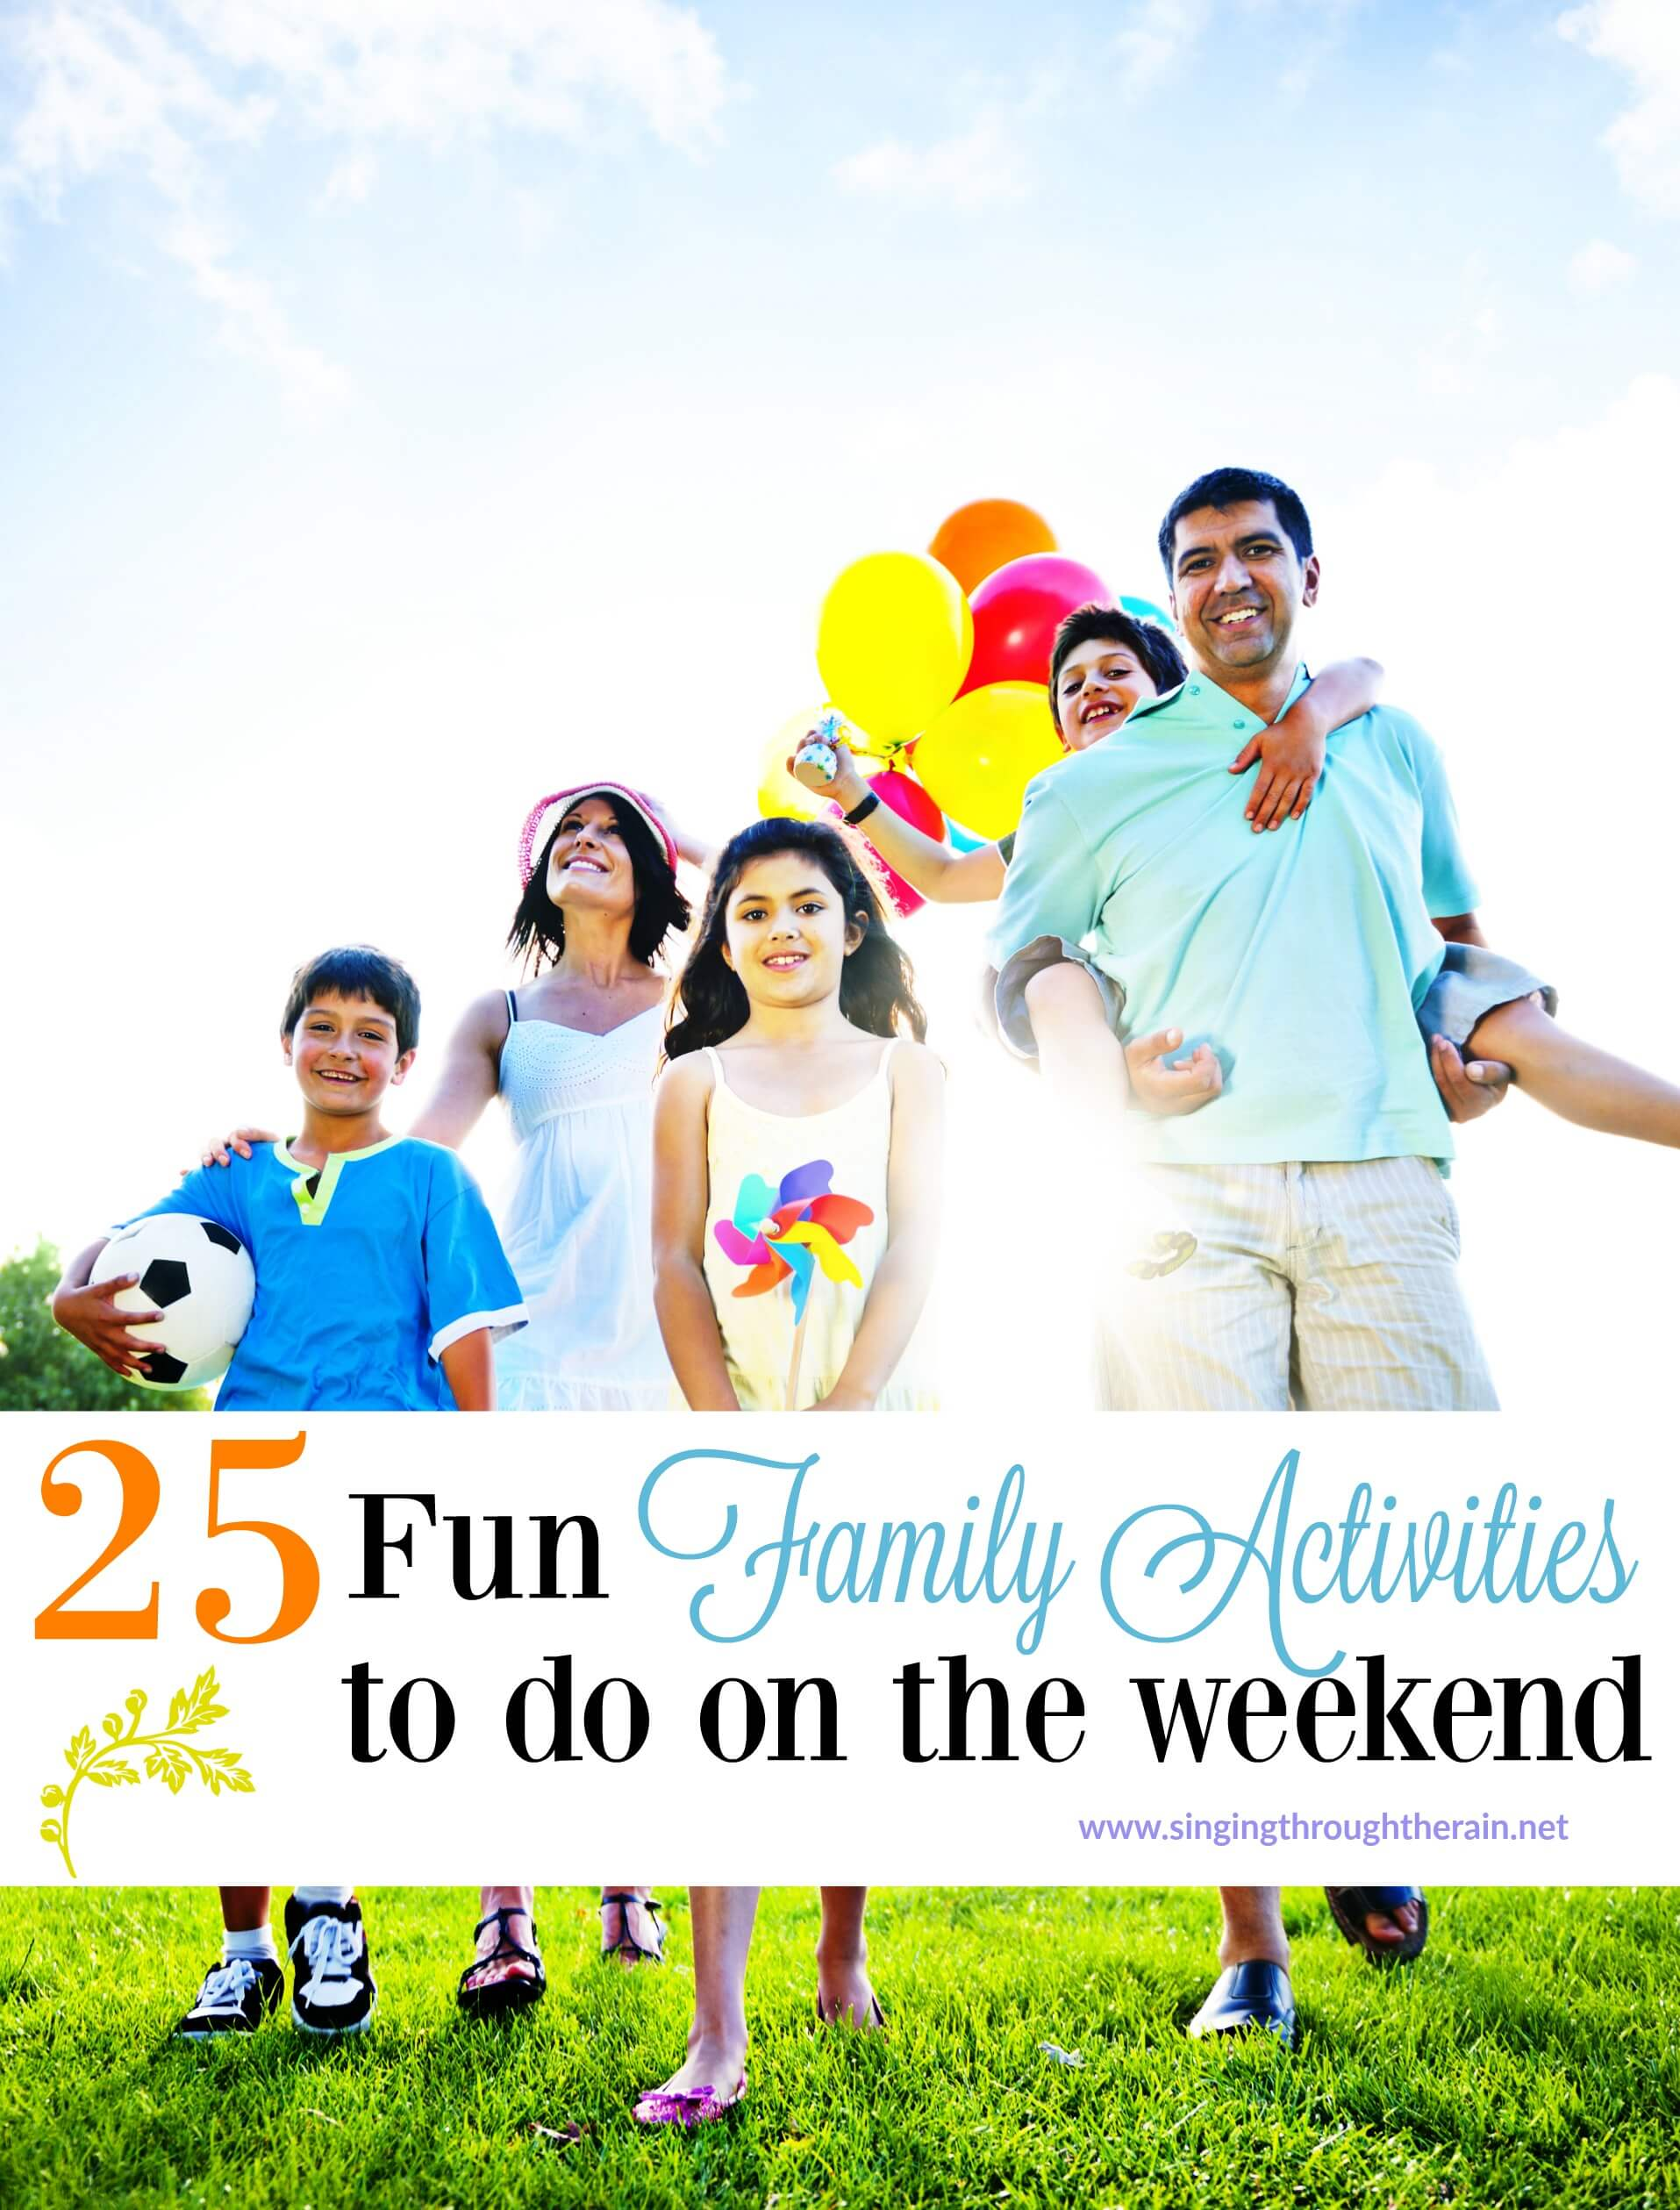 25 Fun Family Activities to do on the Weekend